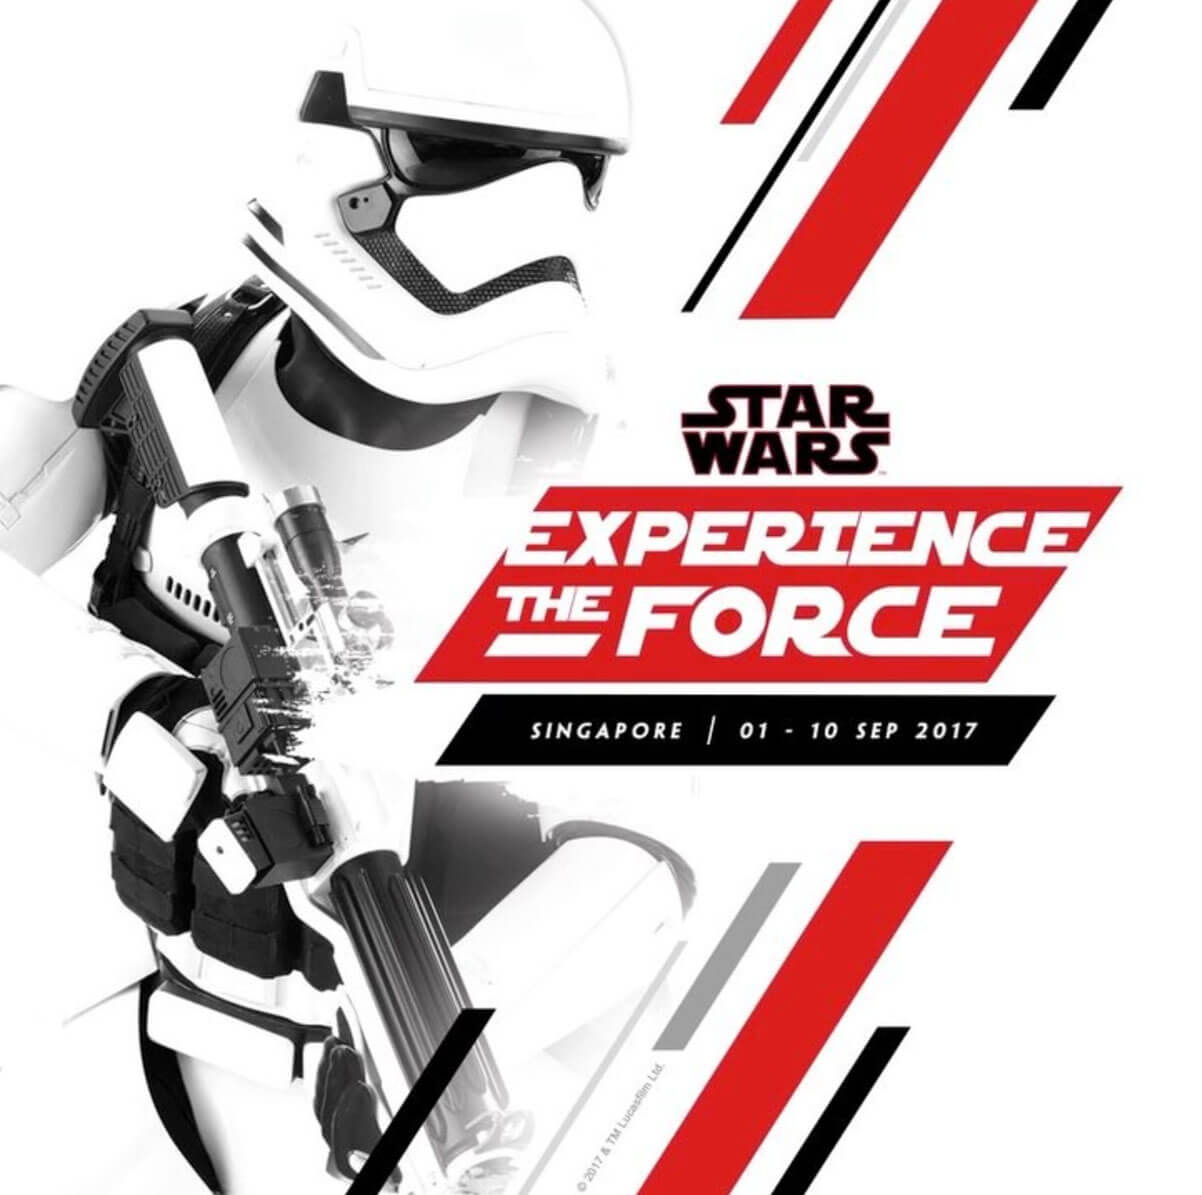 Star Wars - Experience The Force in SG